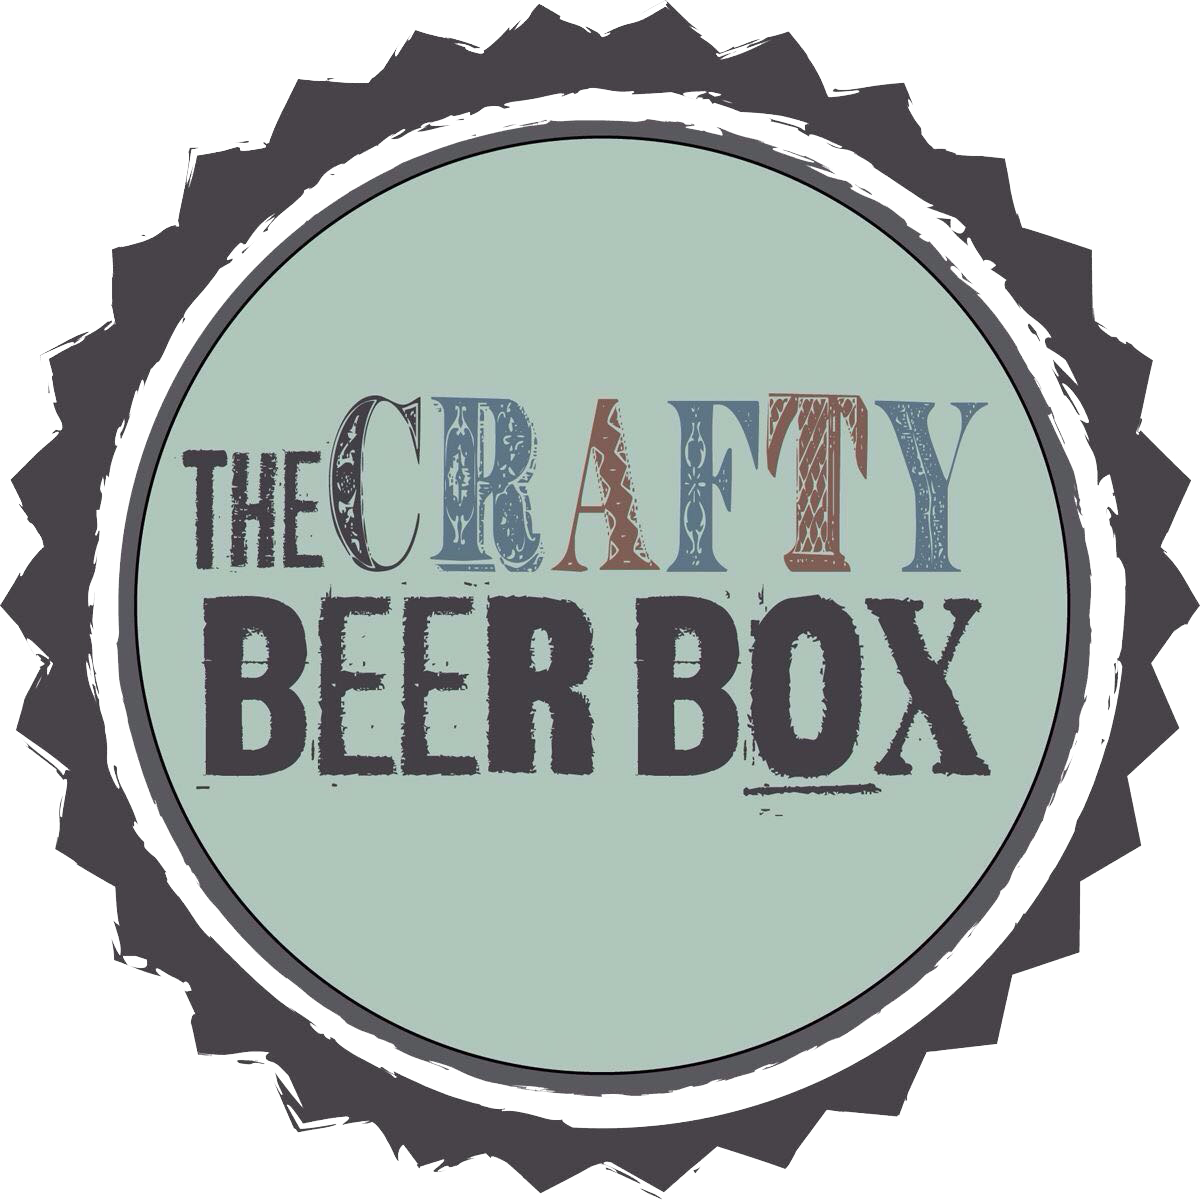 The Crafty Beer Box